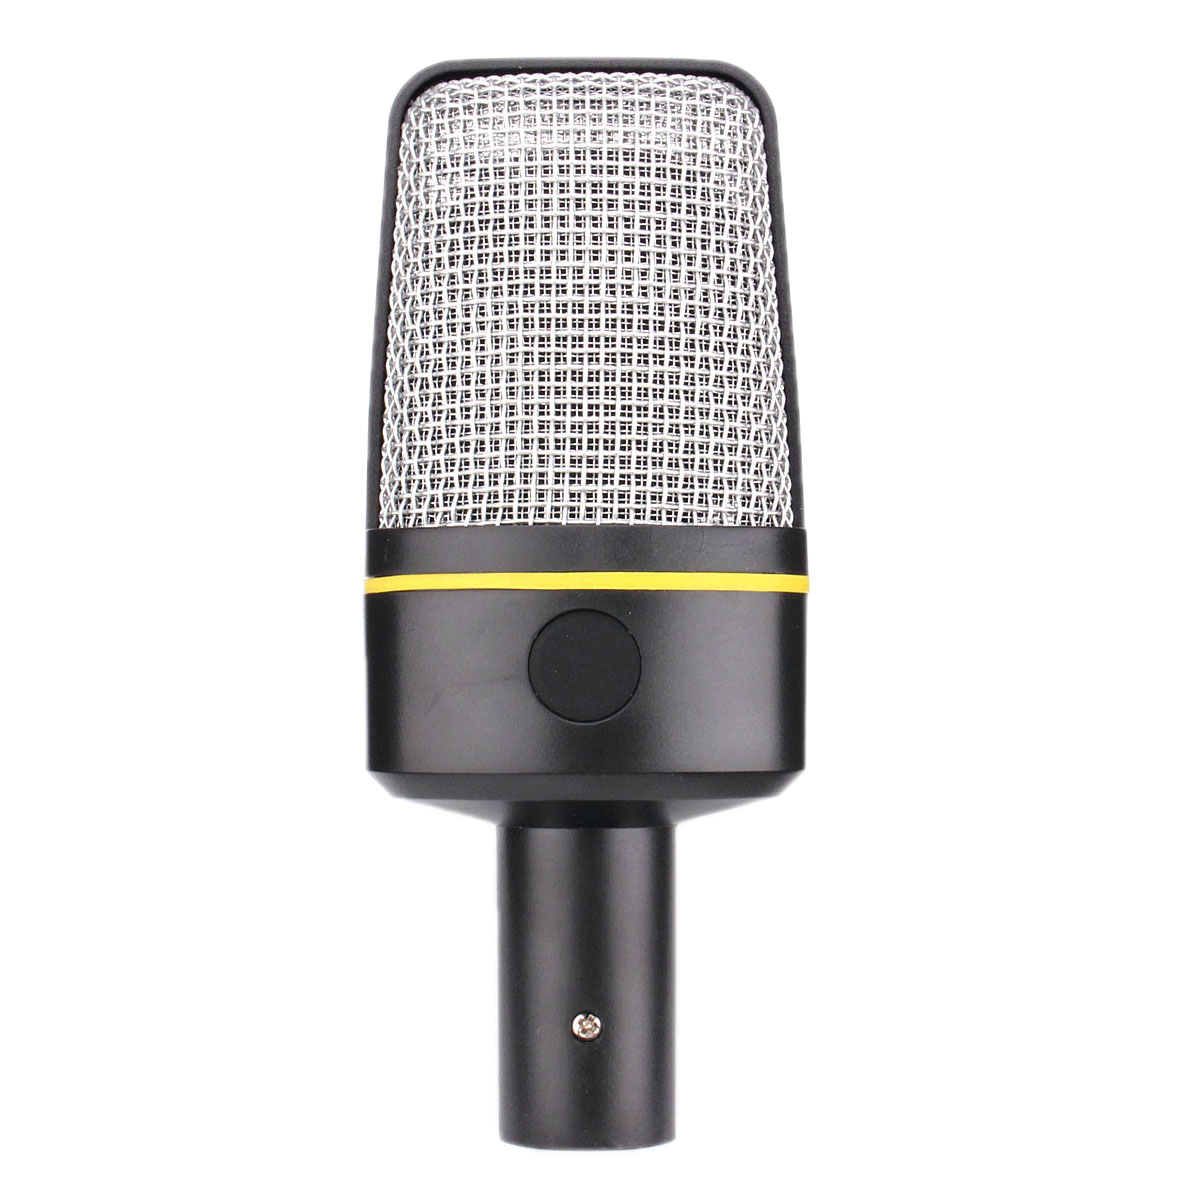 3.5 mm Condenser Microphone Mic For MSN Skype Singing Recording Laptop Notebook PC